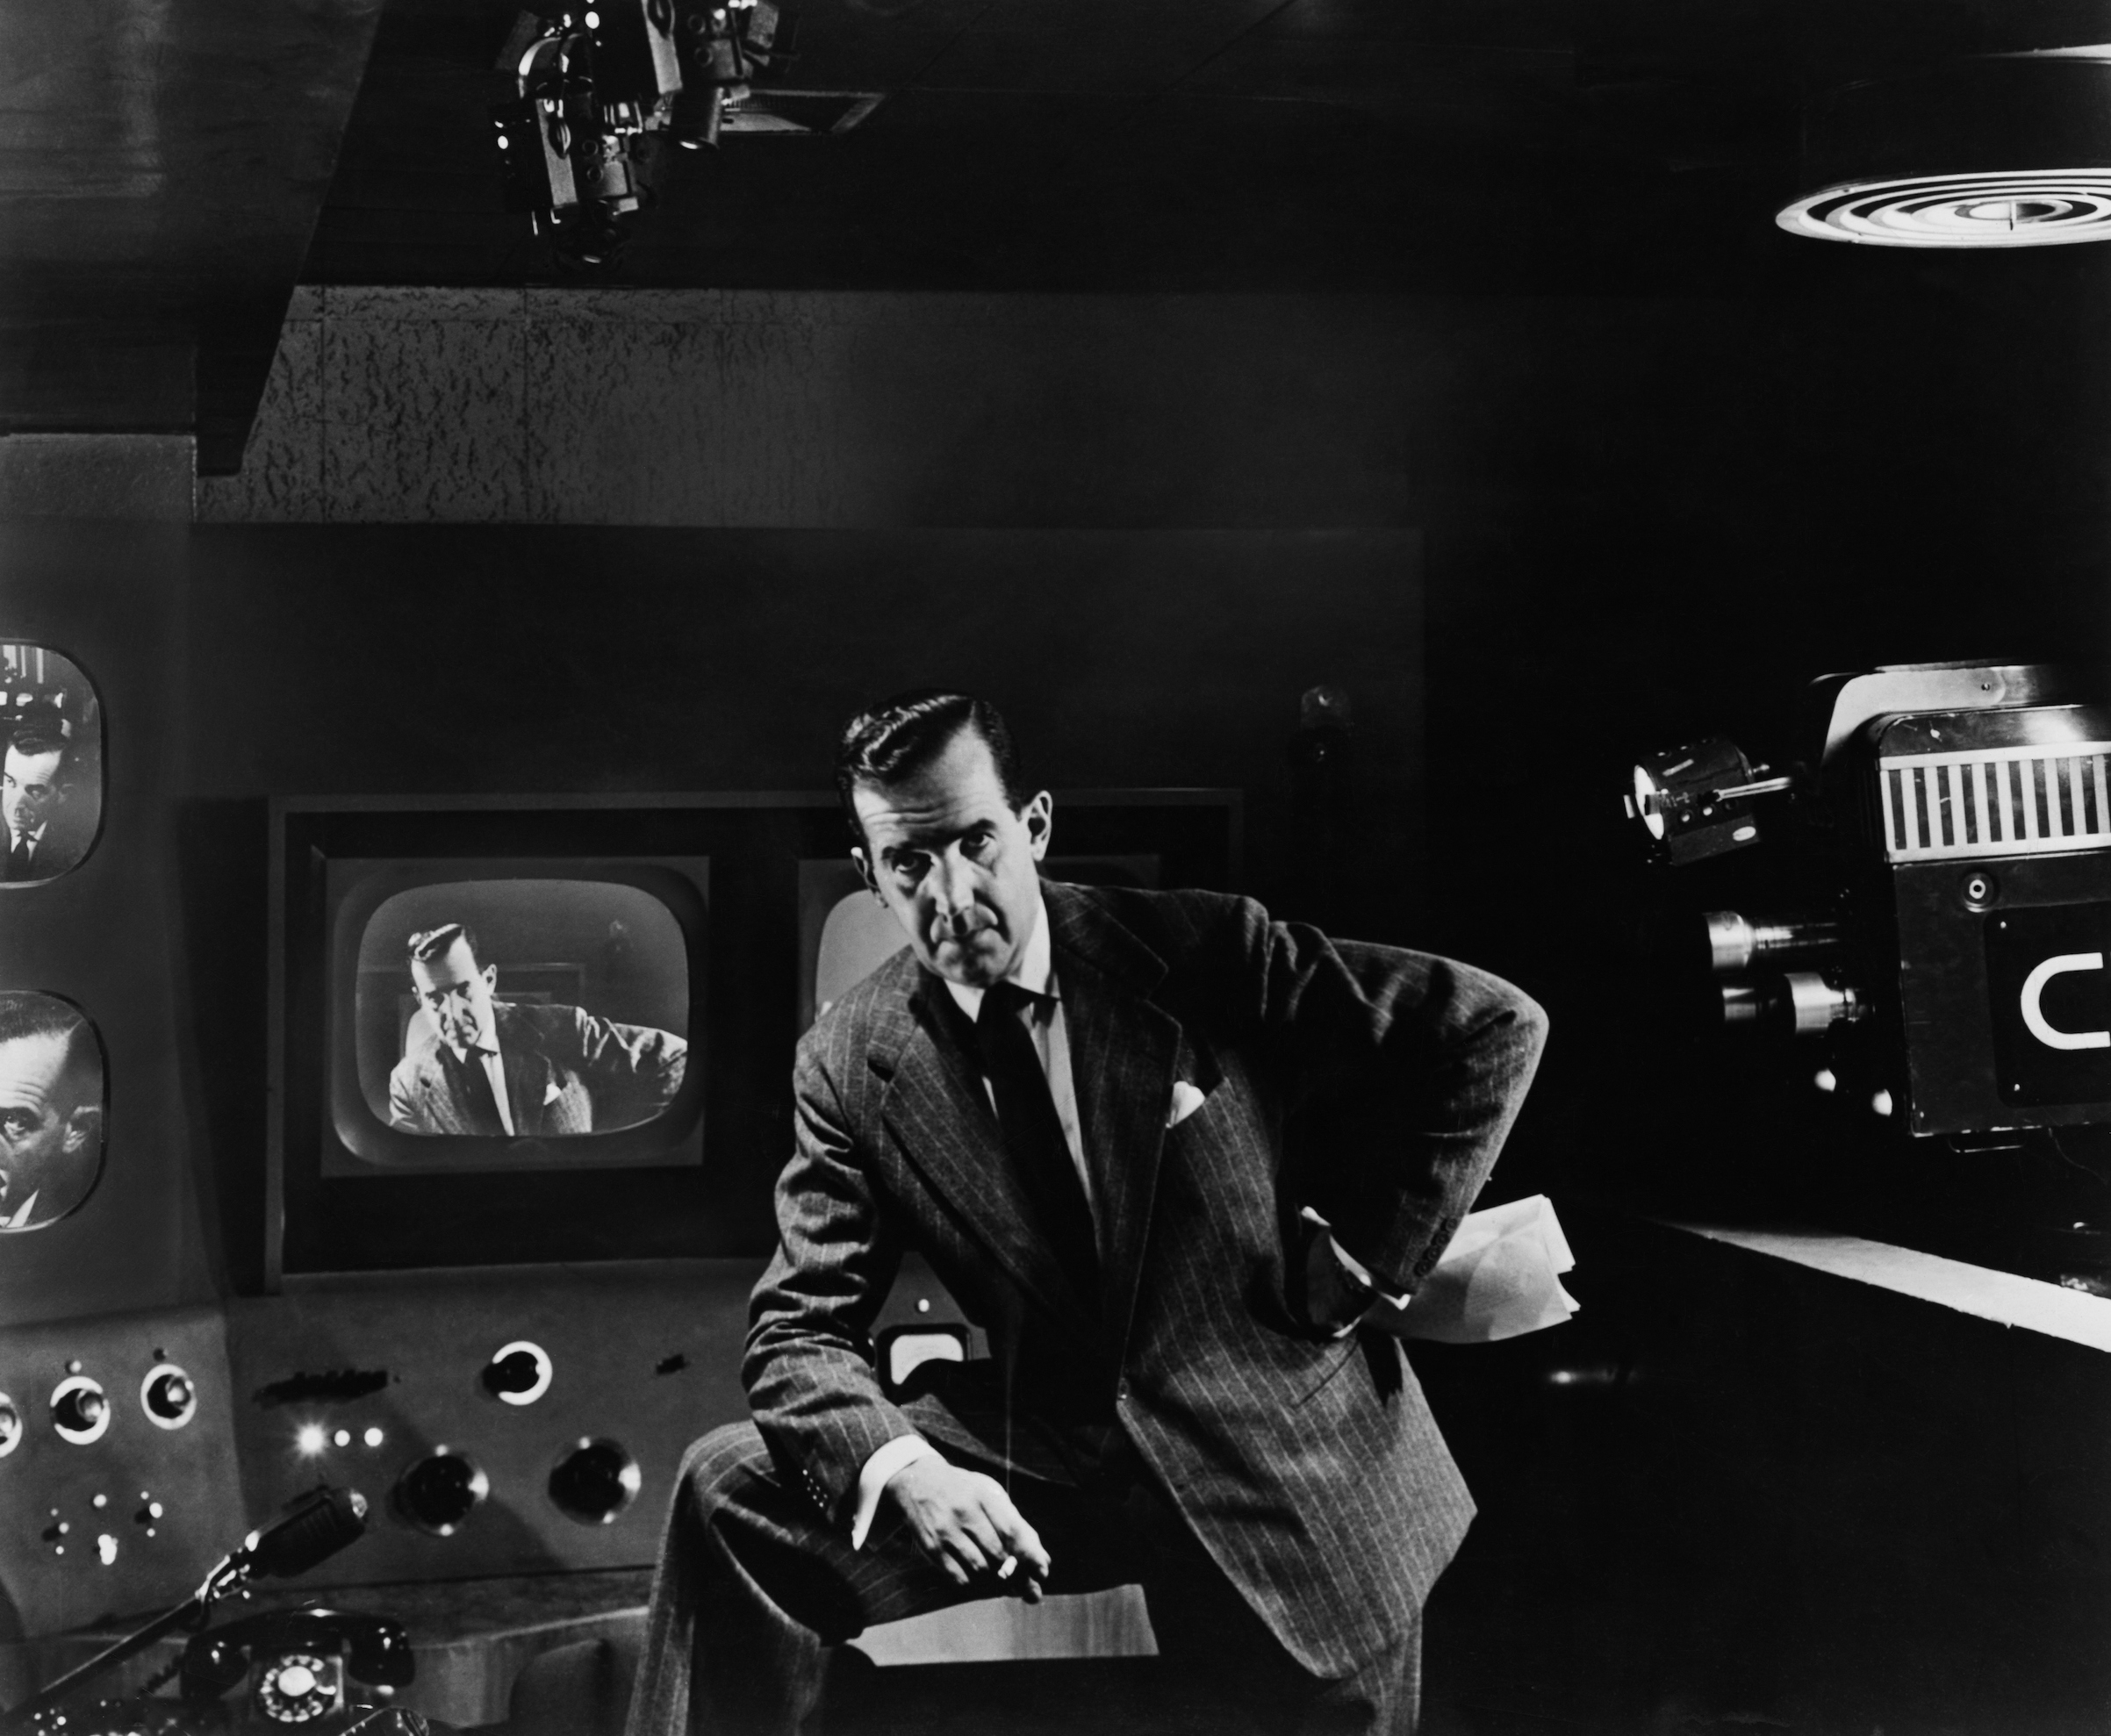 Edward Murrow as the host of 'See It Now' in the 1950s.